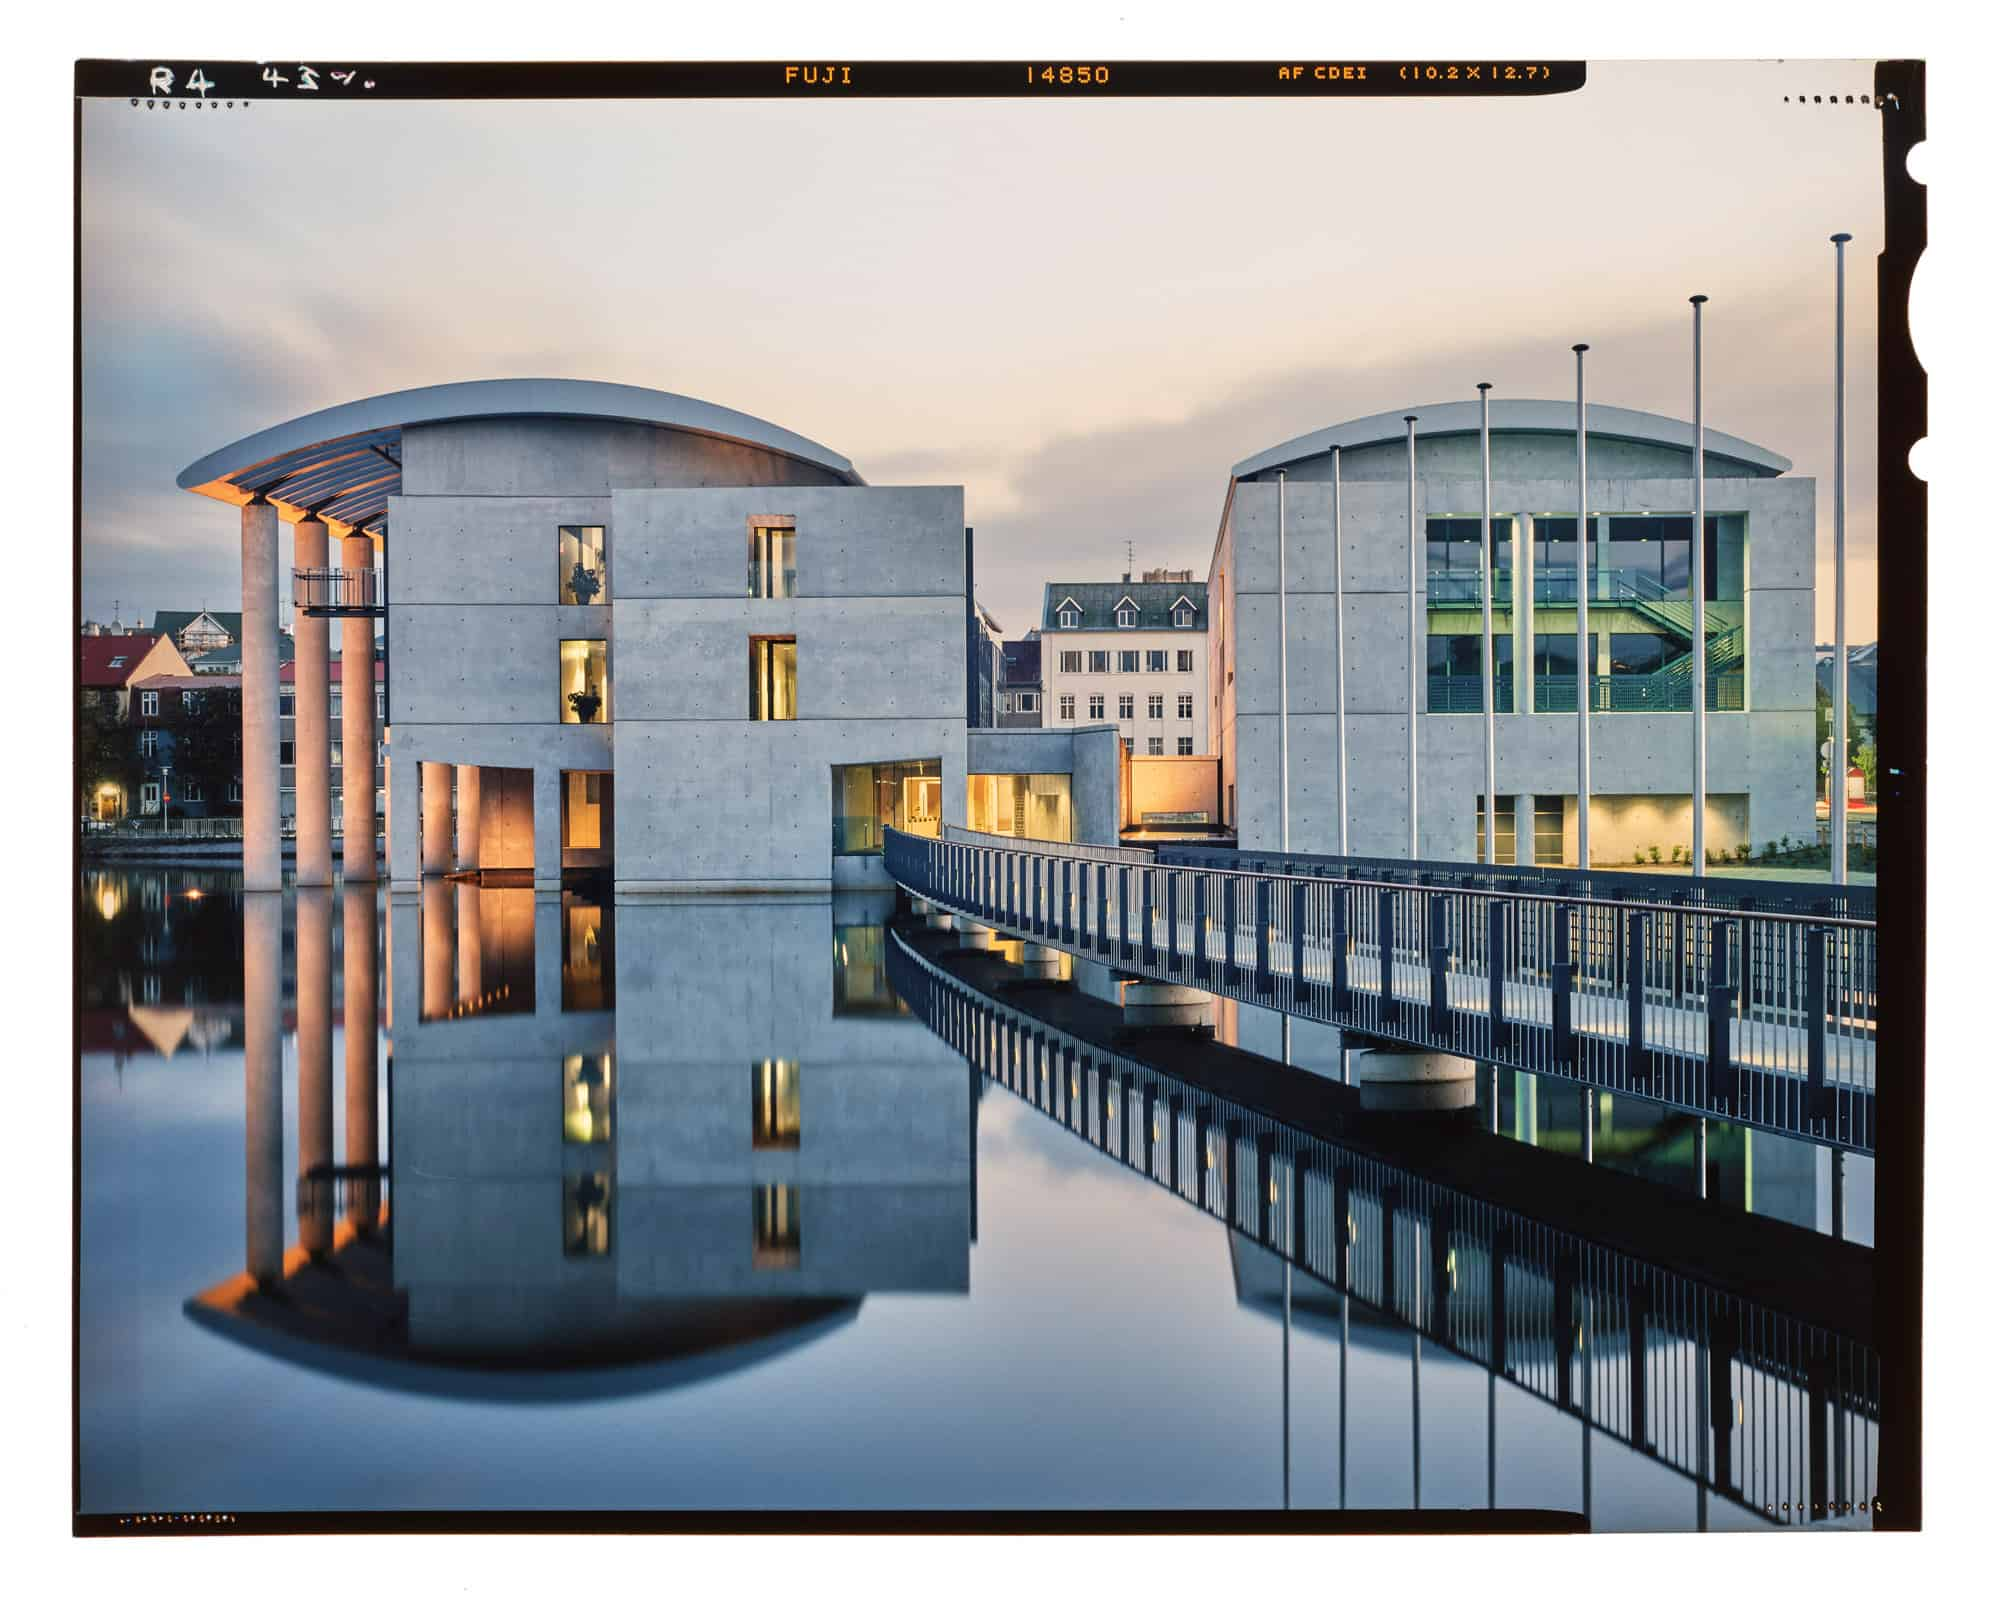 City Hall Reykjavik at dusk in the lake